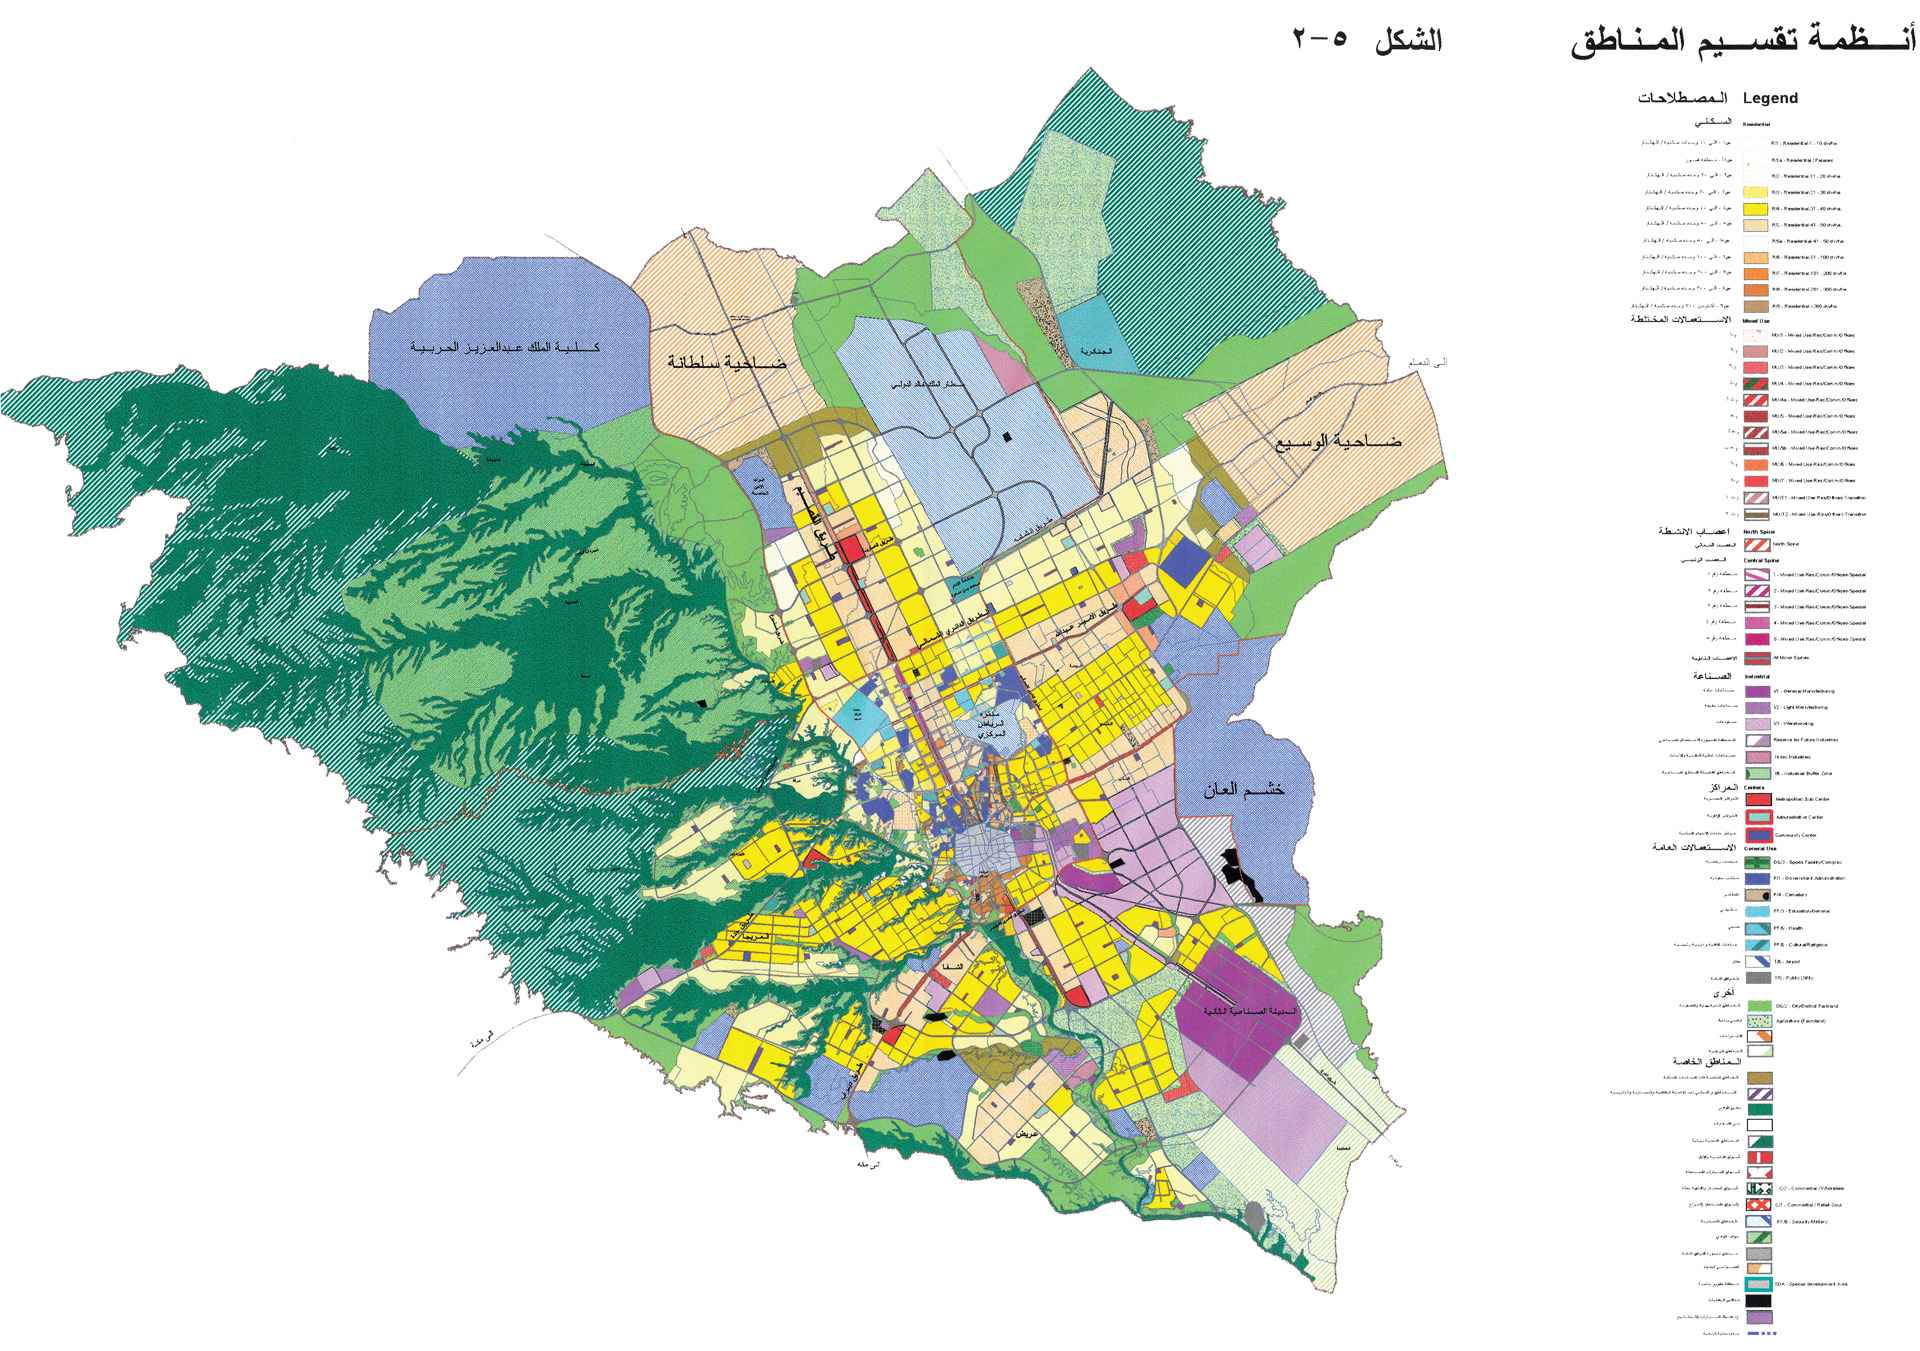 Riyadh MEDSTAR - Land Use Plan Zoning Plan - Riyadh, Saudi Arabia - Urban Planning